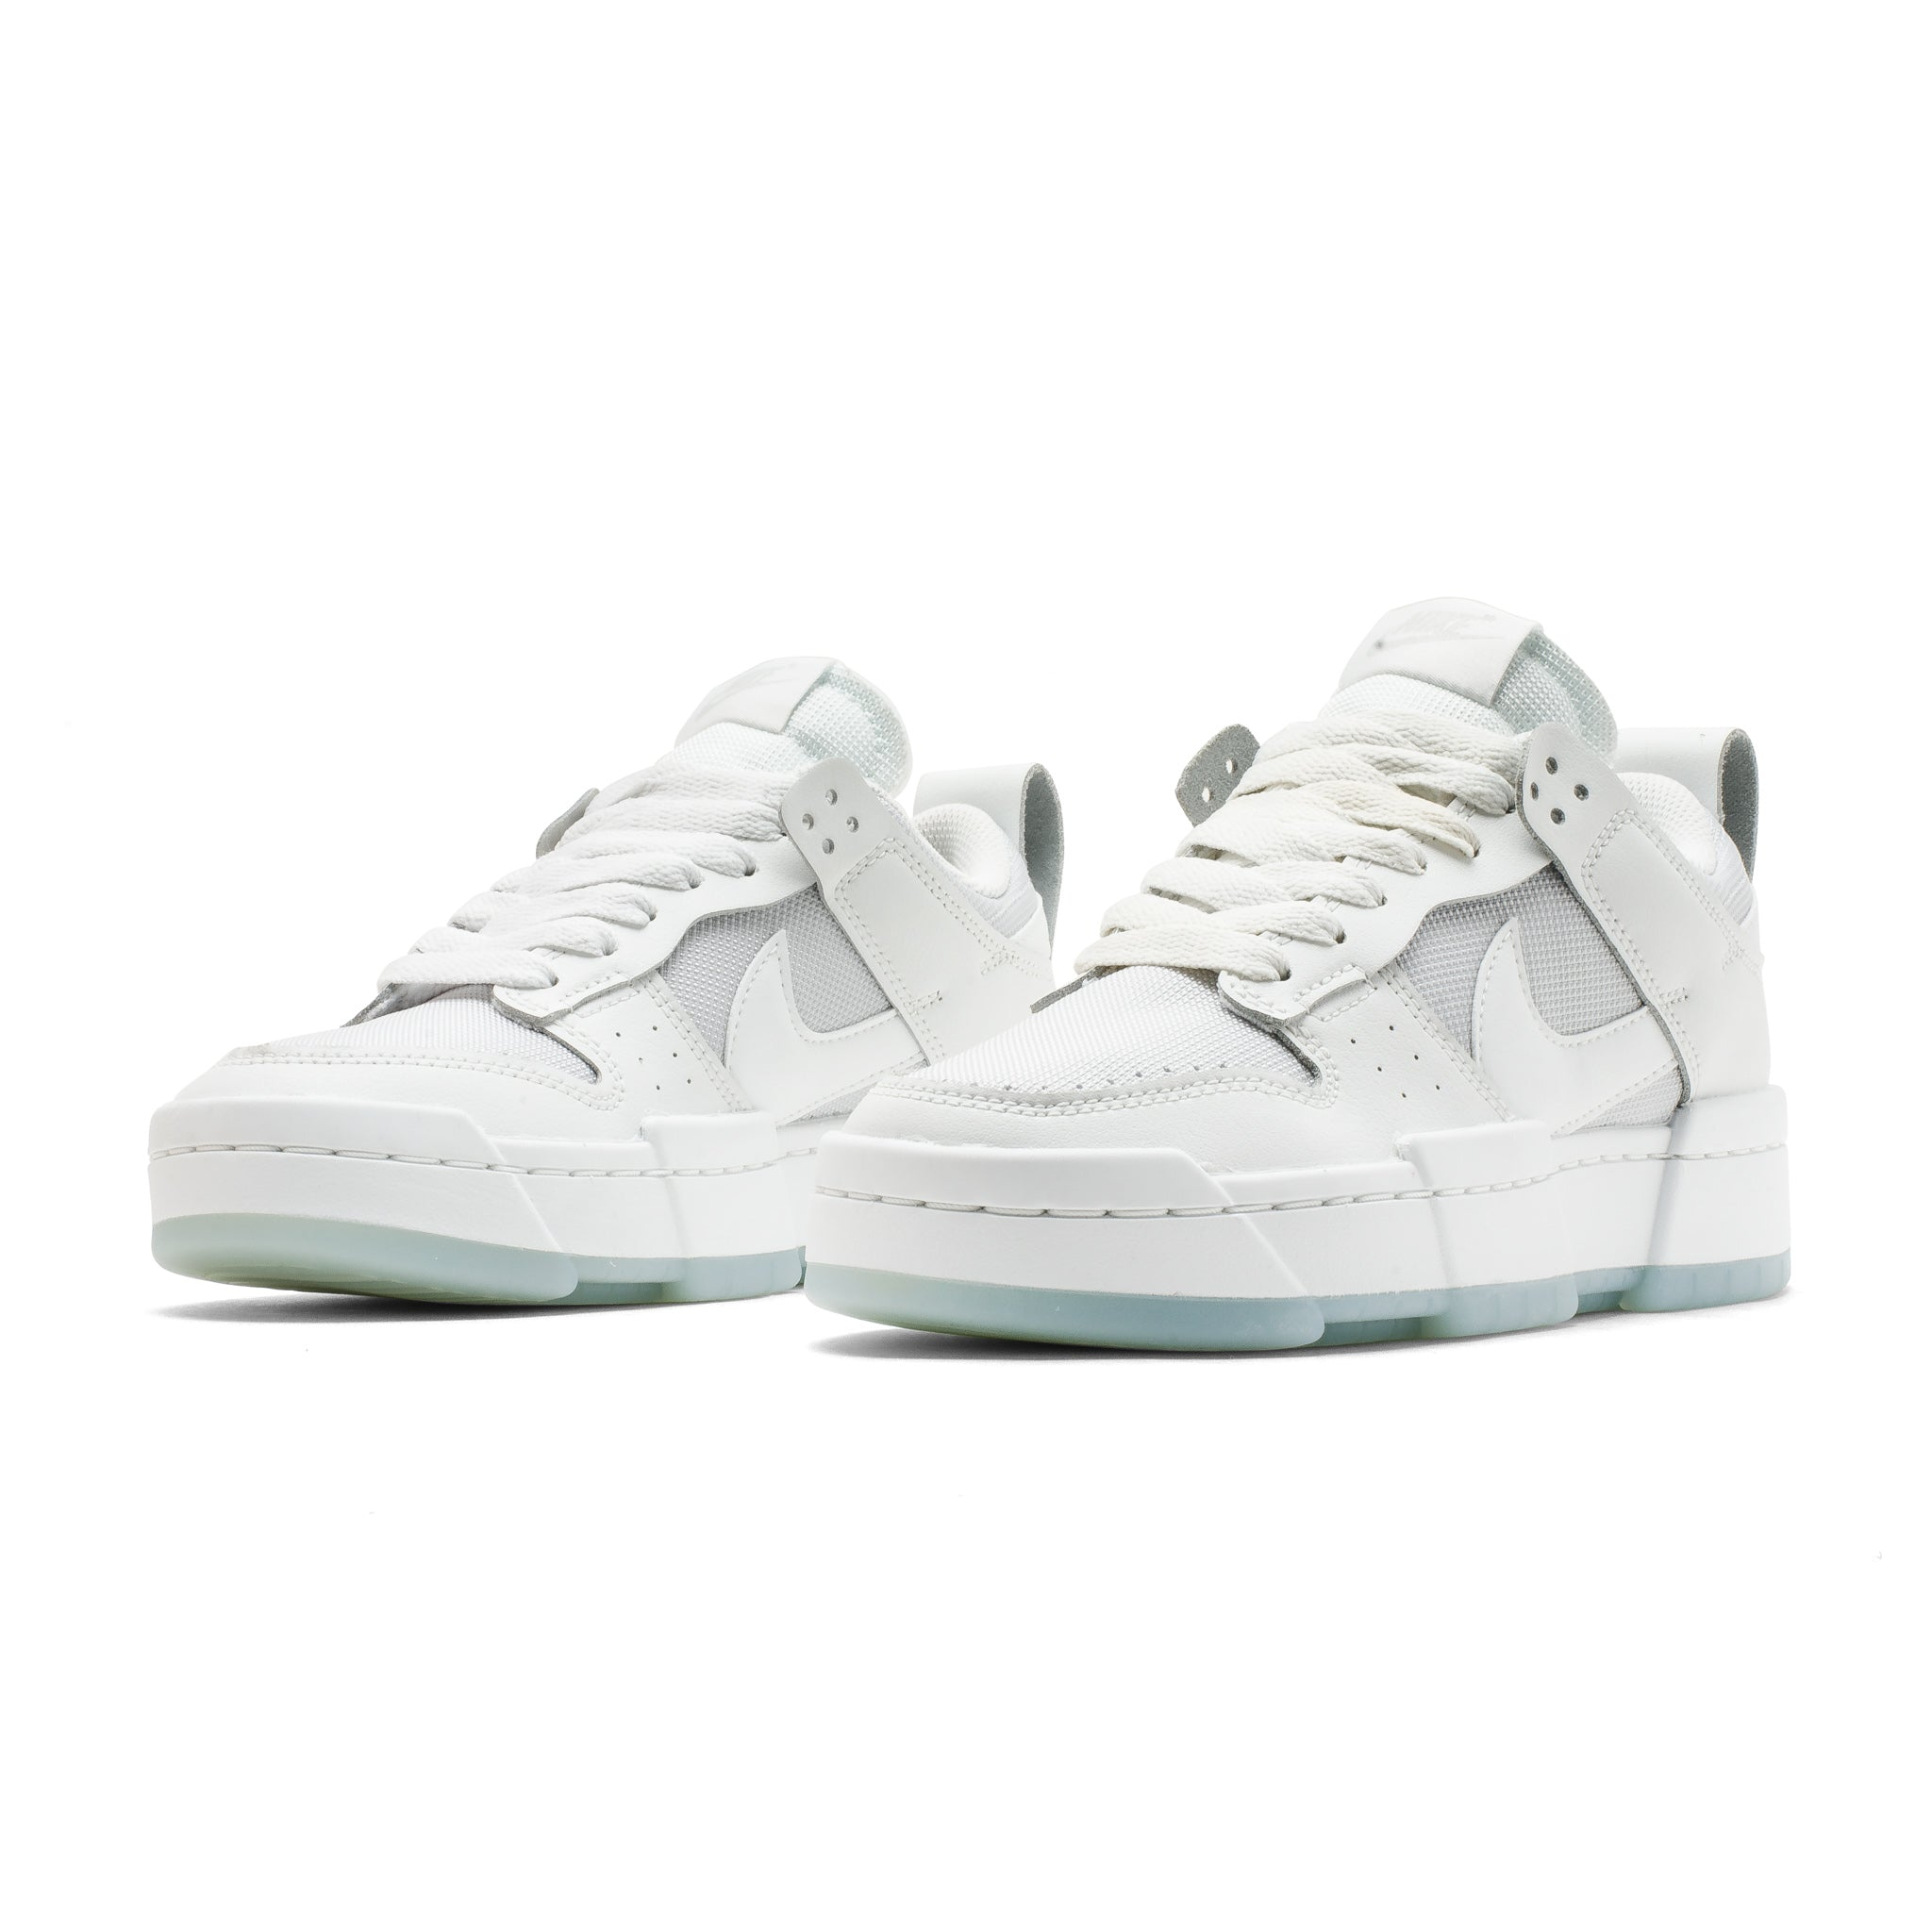 WMNS Nike Dunk Low Disrupt CK6654-001 Photon